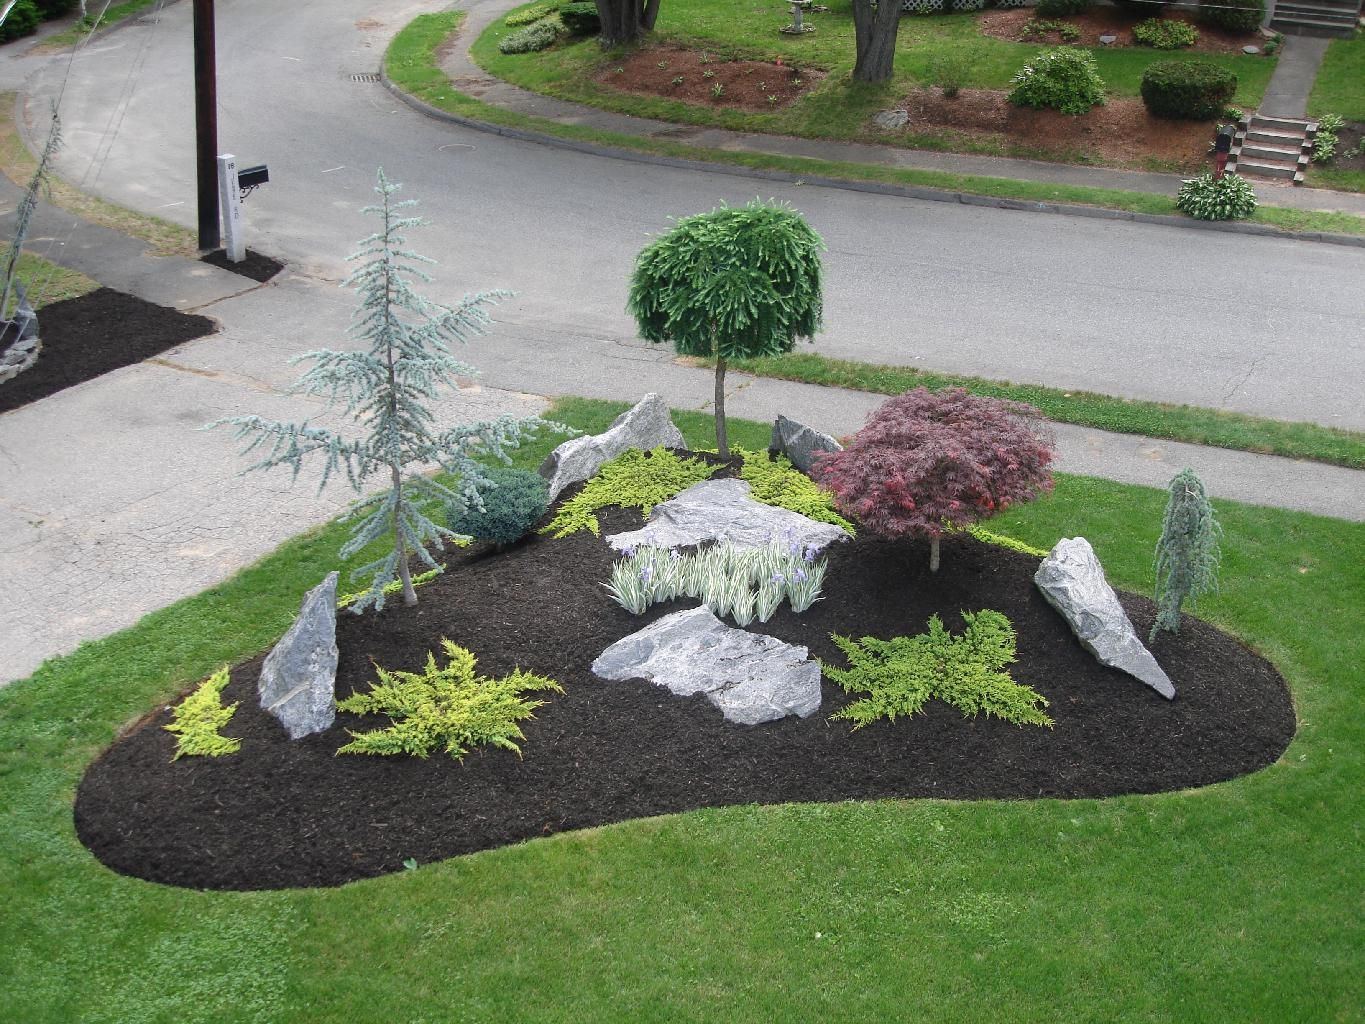 Pin By Felicia Gilliland On Landscaping Ideas Small Front Yard Landscaping Front Yard Garden Front Yard Landscaping Design